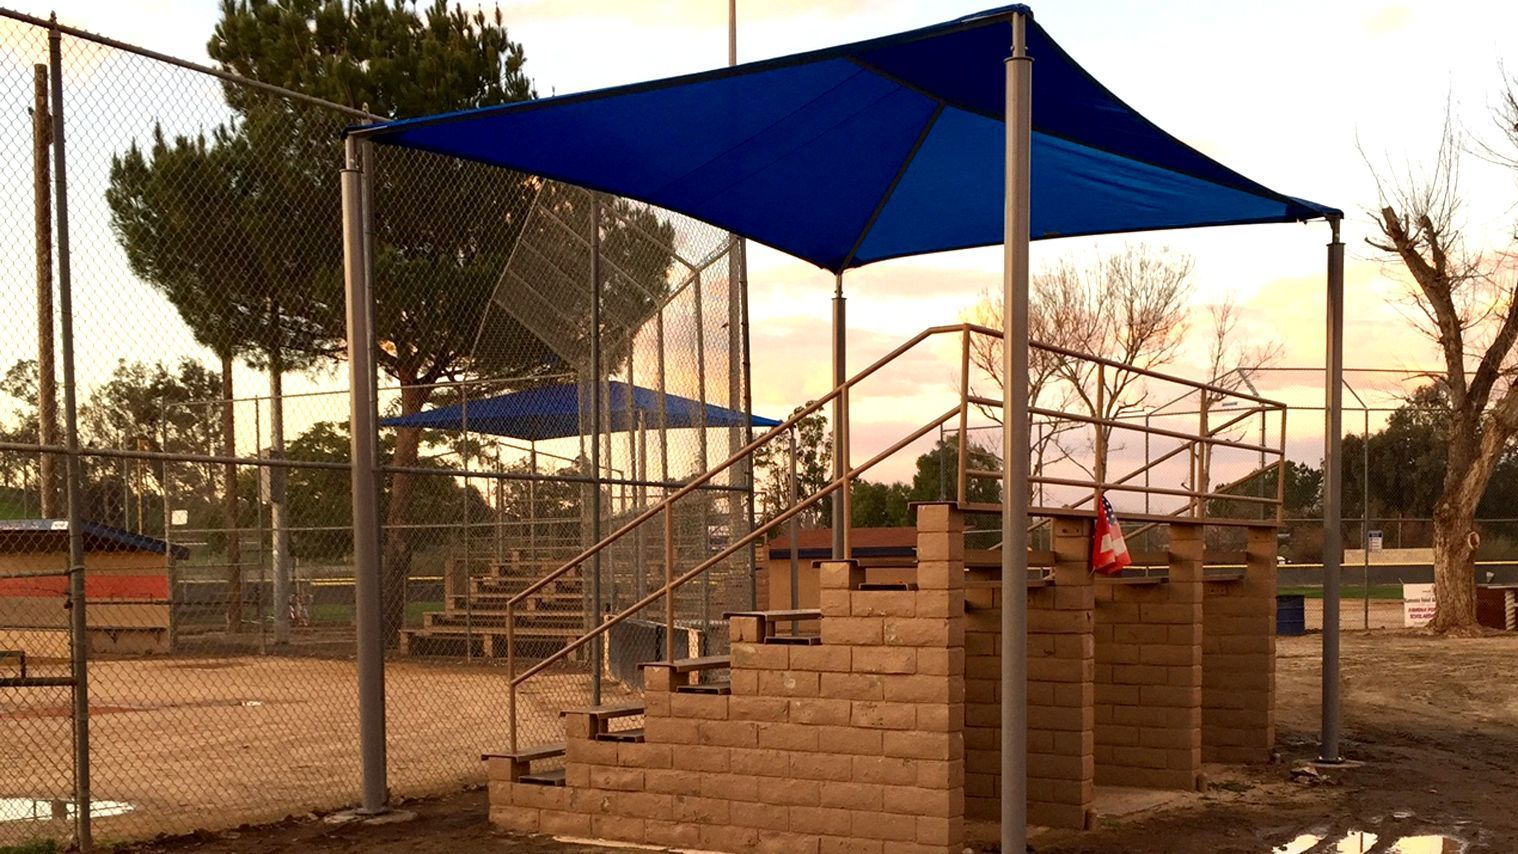 Two shade structures cover stands at a Pony baseball field. A total of six shade structures were added in the baseball complex in Ramona Community Park.